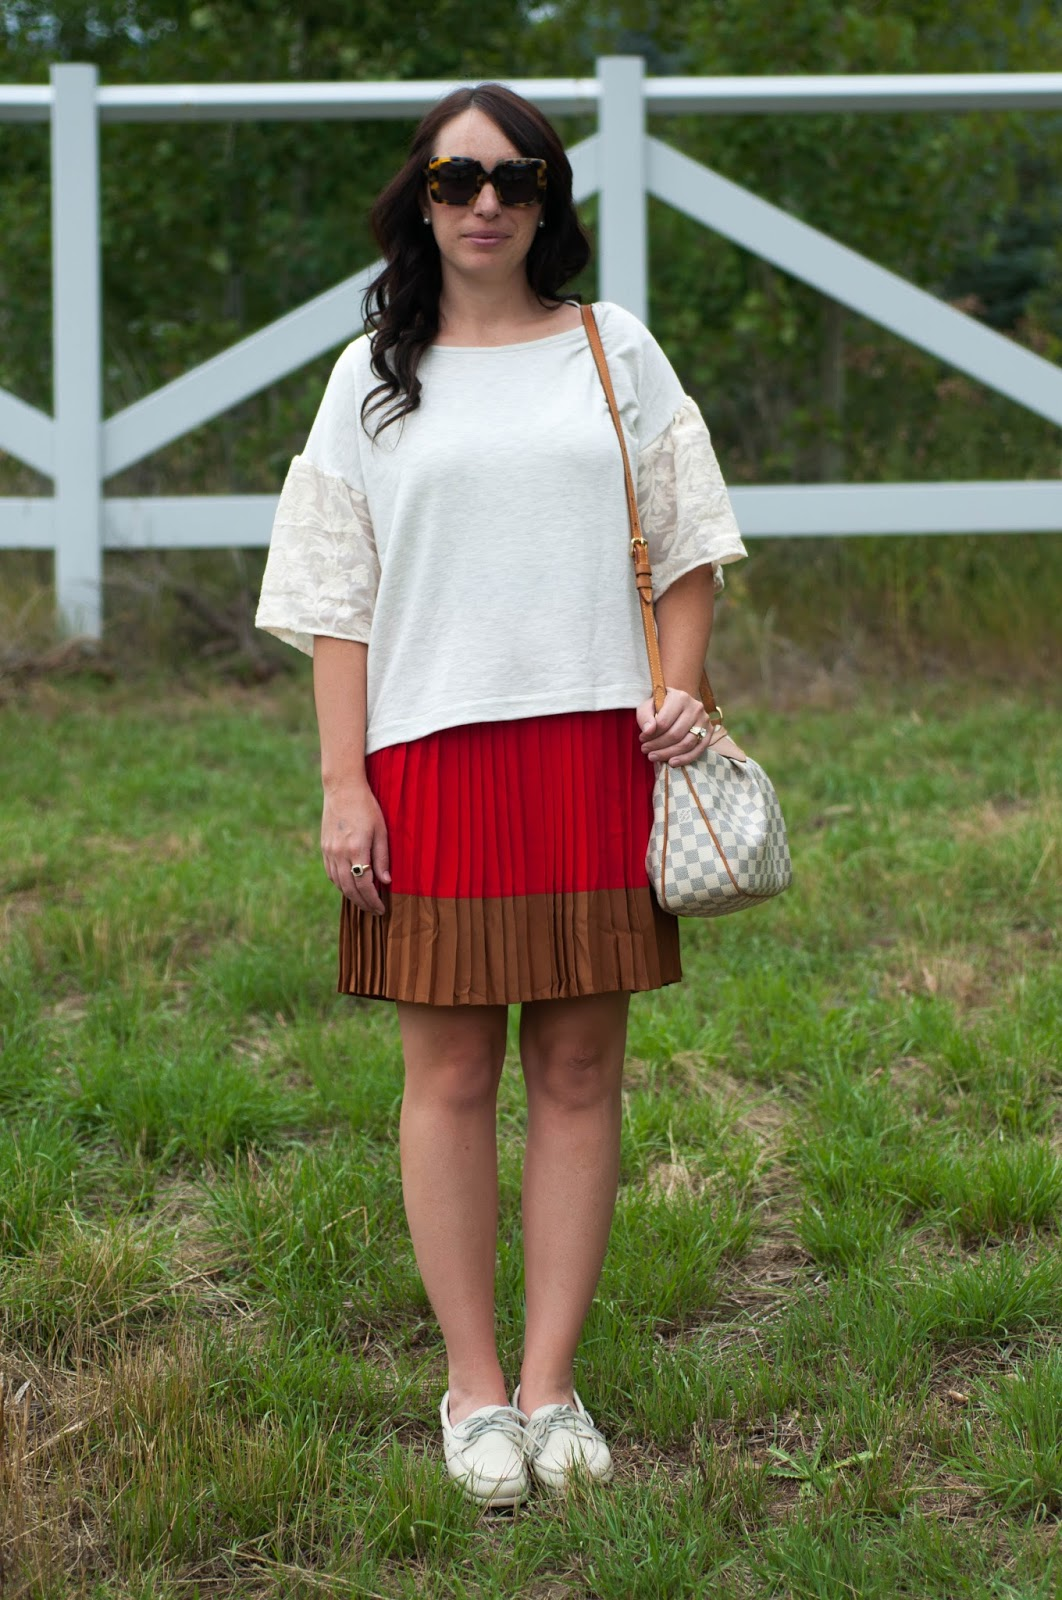 ootd, anthropologie ootd, lands end pleated skirt, sperry topsider for women, karen walker sunglasses